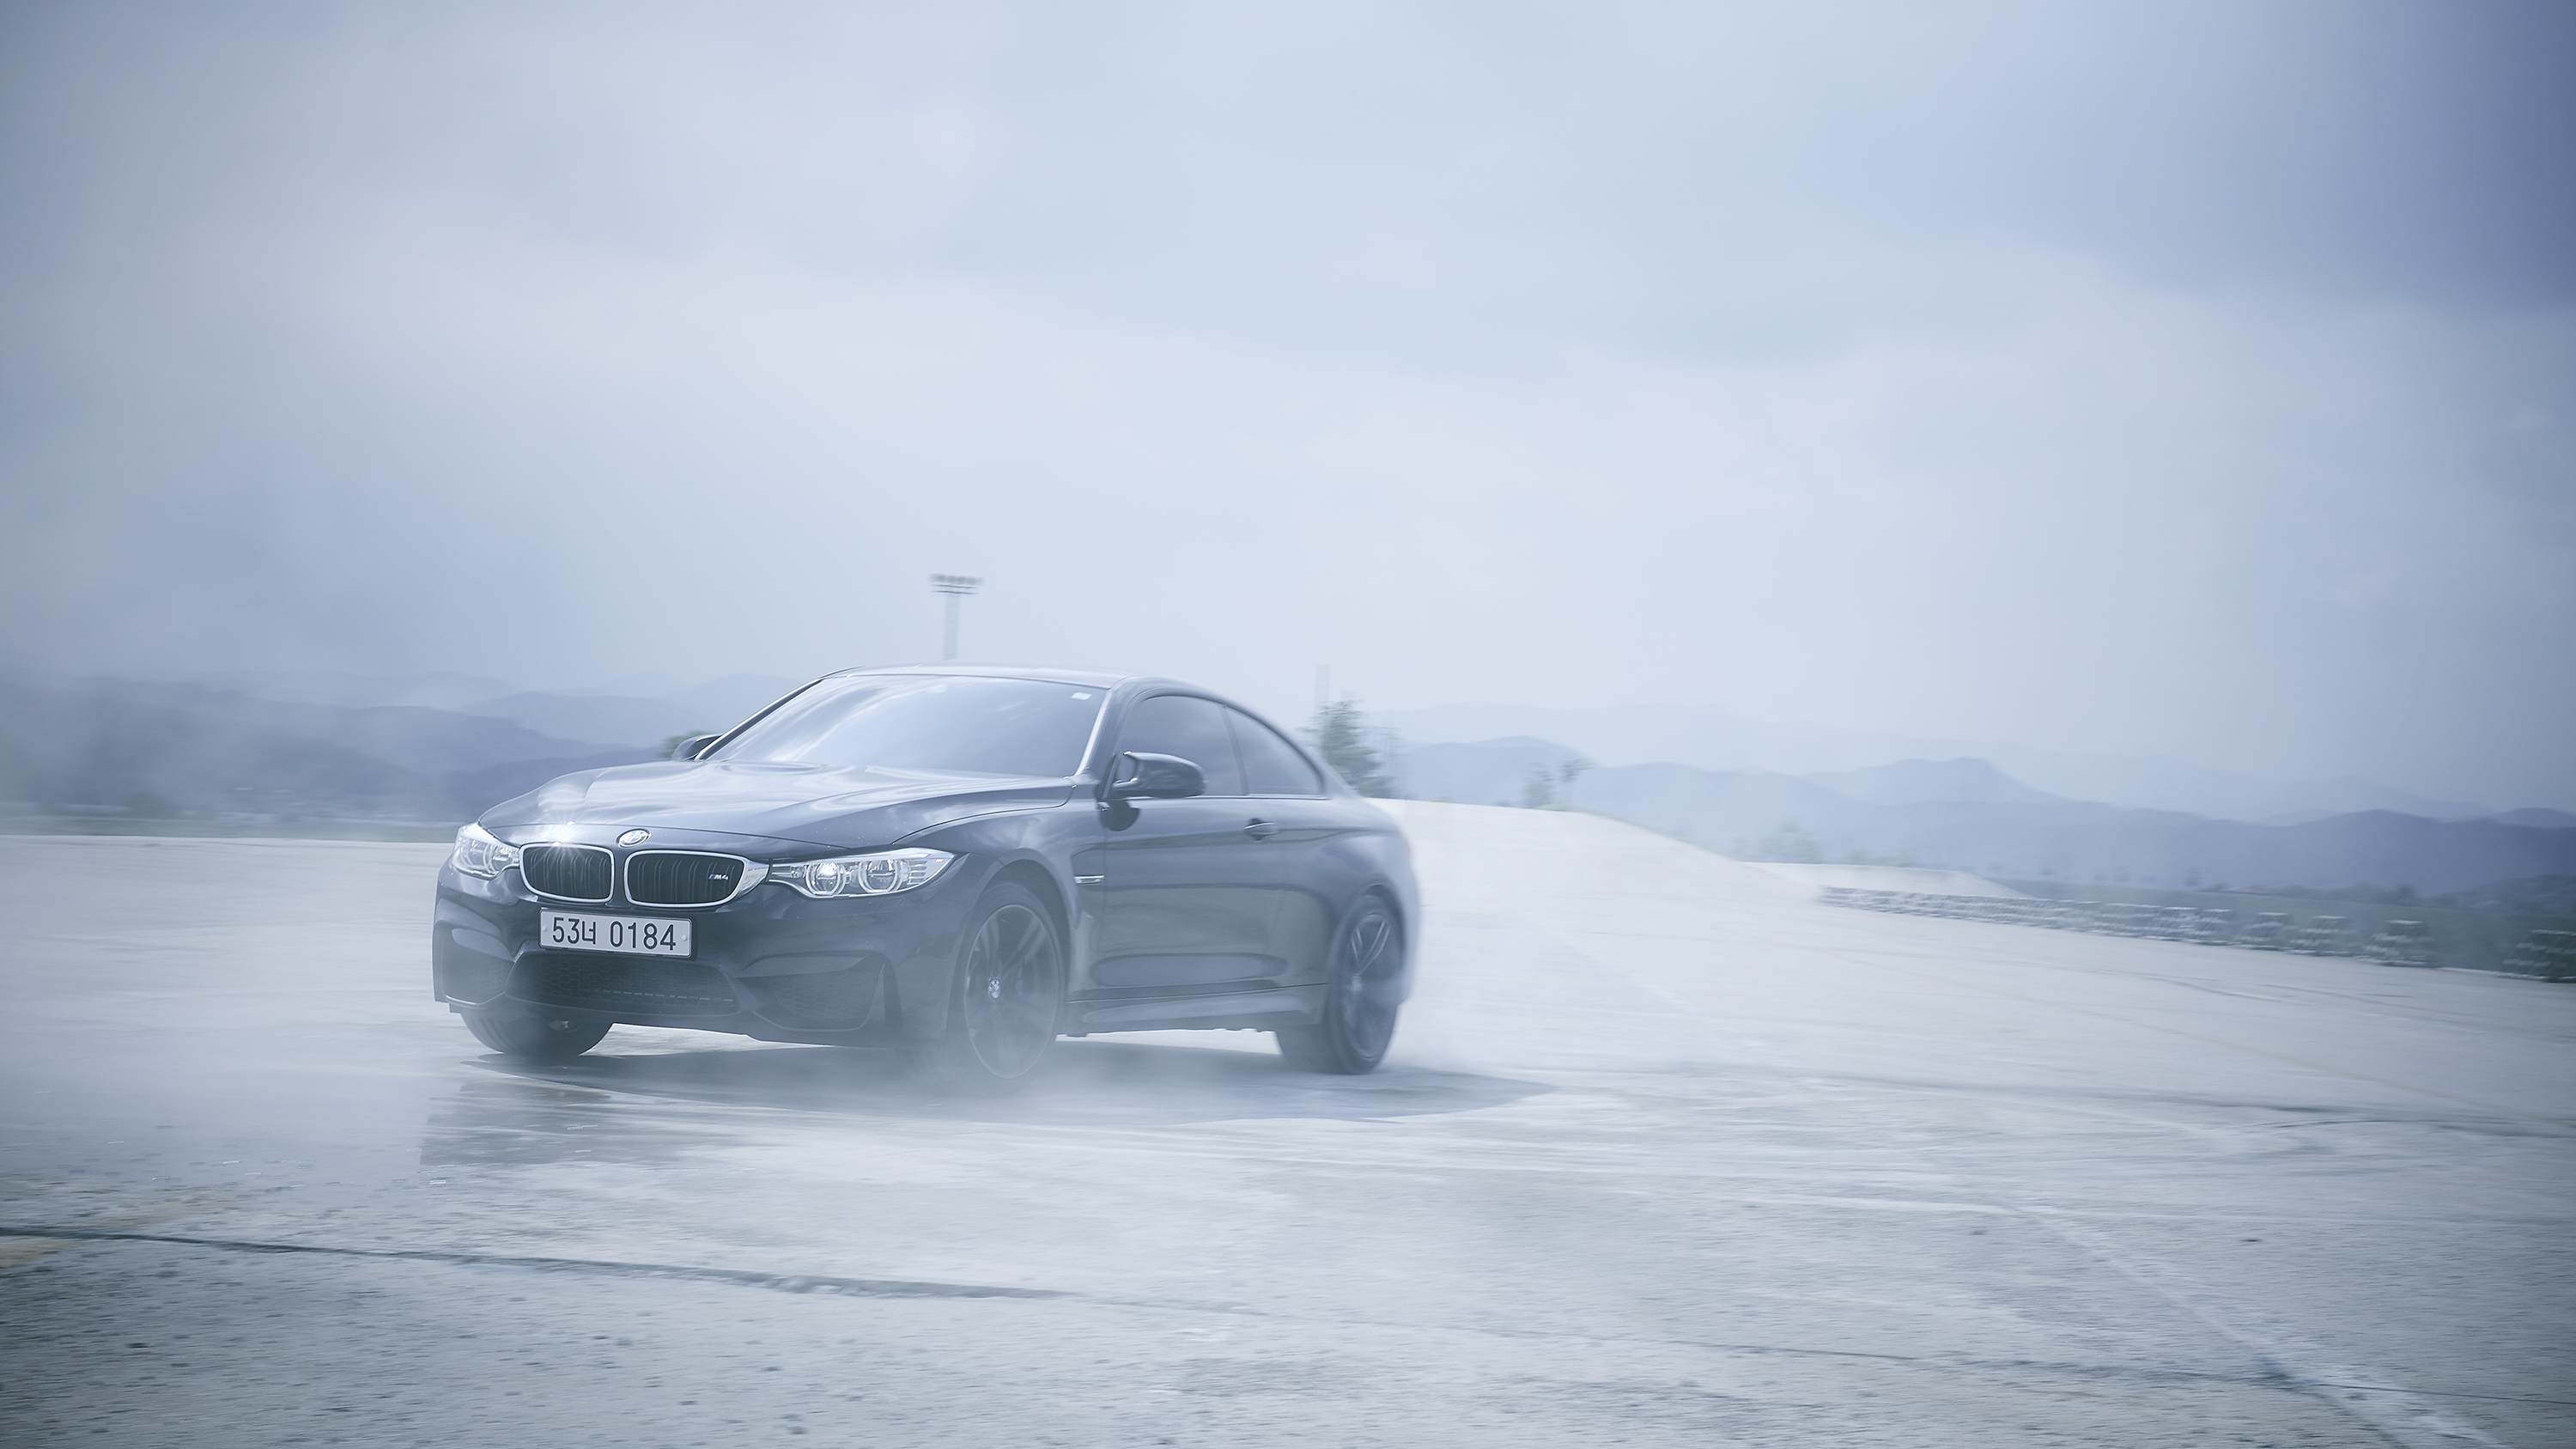 BMW F80 M4 Burnout